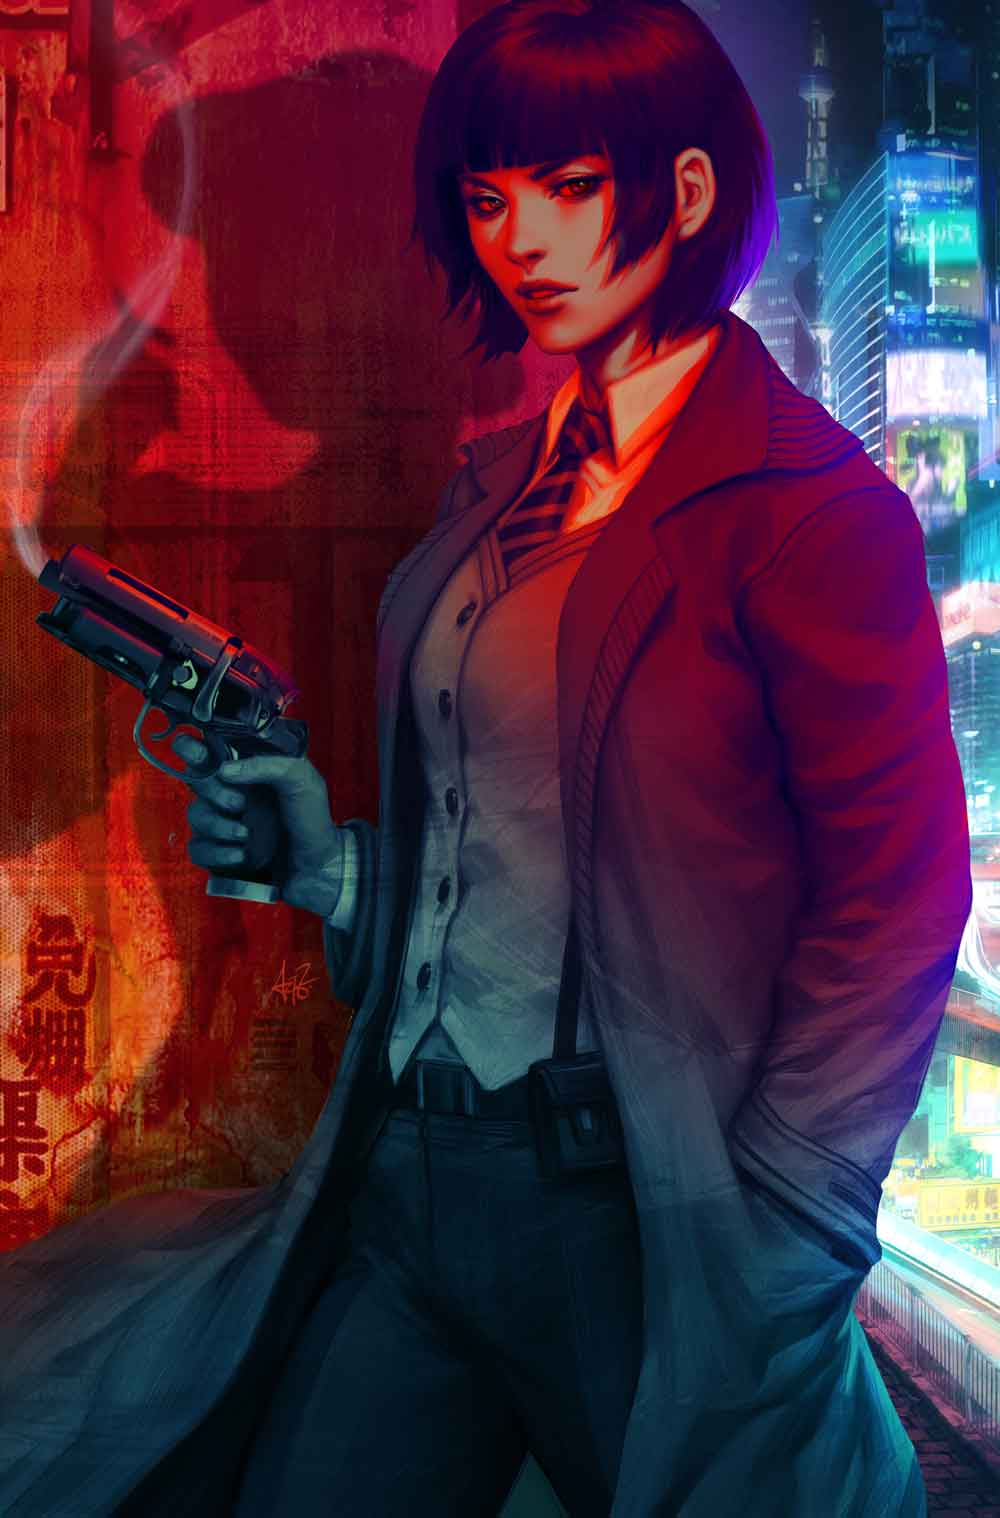 A woman holding a gun with a cityscape in the background